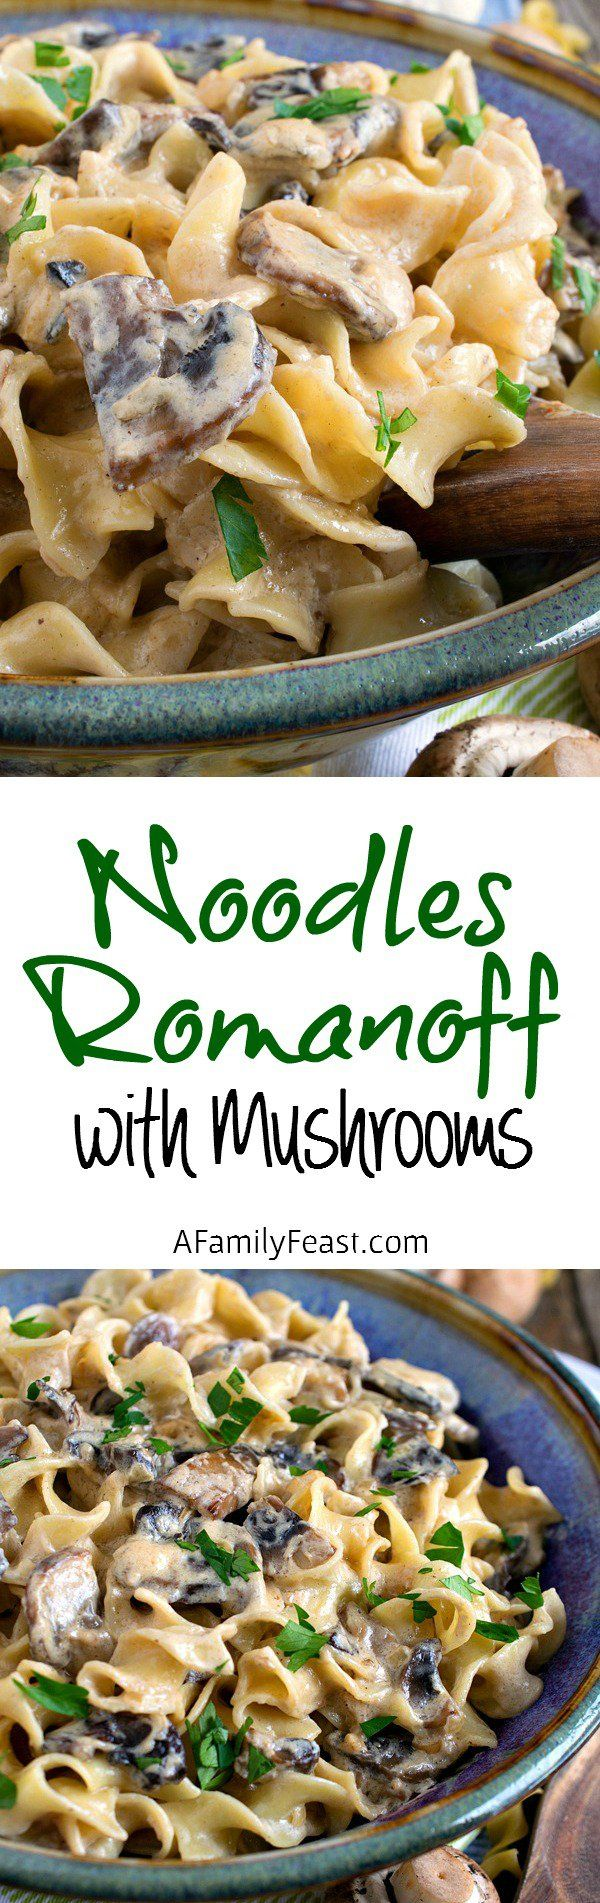 Noodles Romanoff with Mushrooms - A modern update on the classic Noodles Romanoff dish. Delicious and creamy!